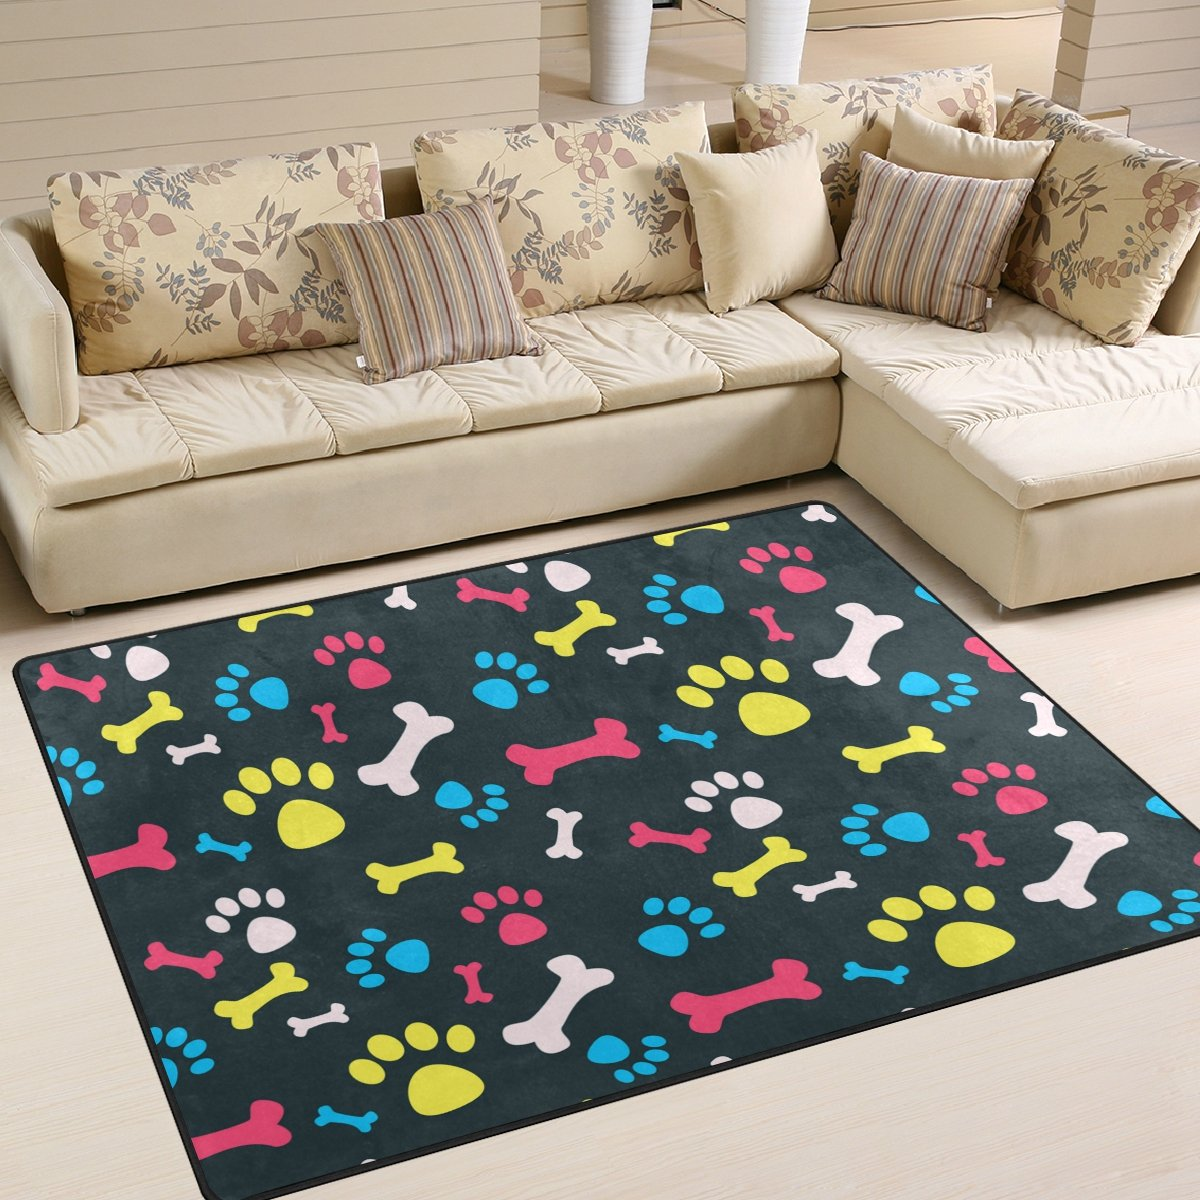 ALAZA Colorful Dog Pawprint Kids Area Rug,Pet Pawprint Non-Slip Floor Mat Soft Resting Area Doormats for Living Dining Bedroom 5 x 7